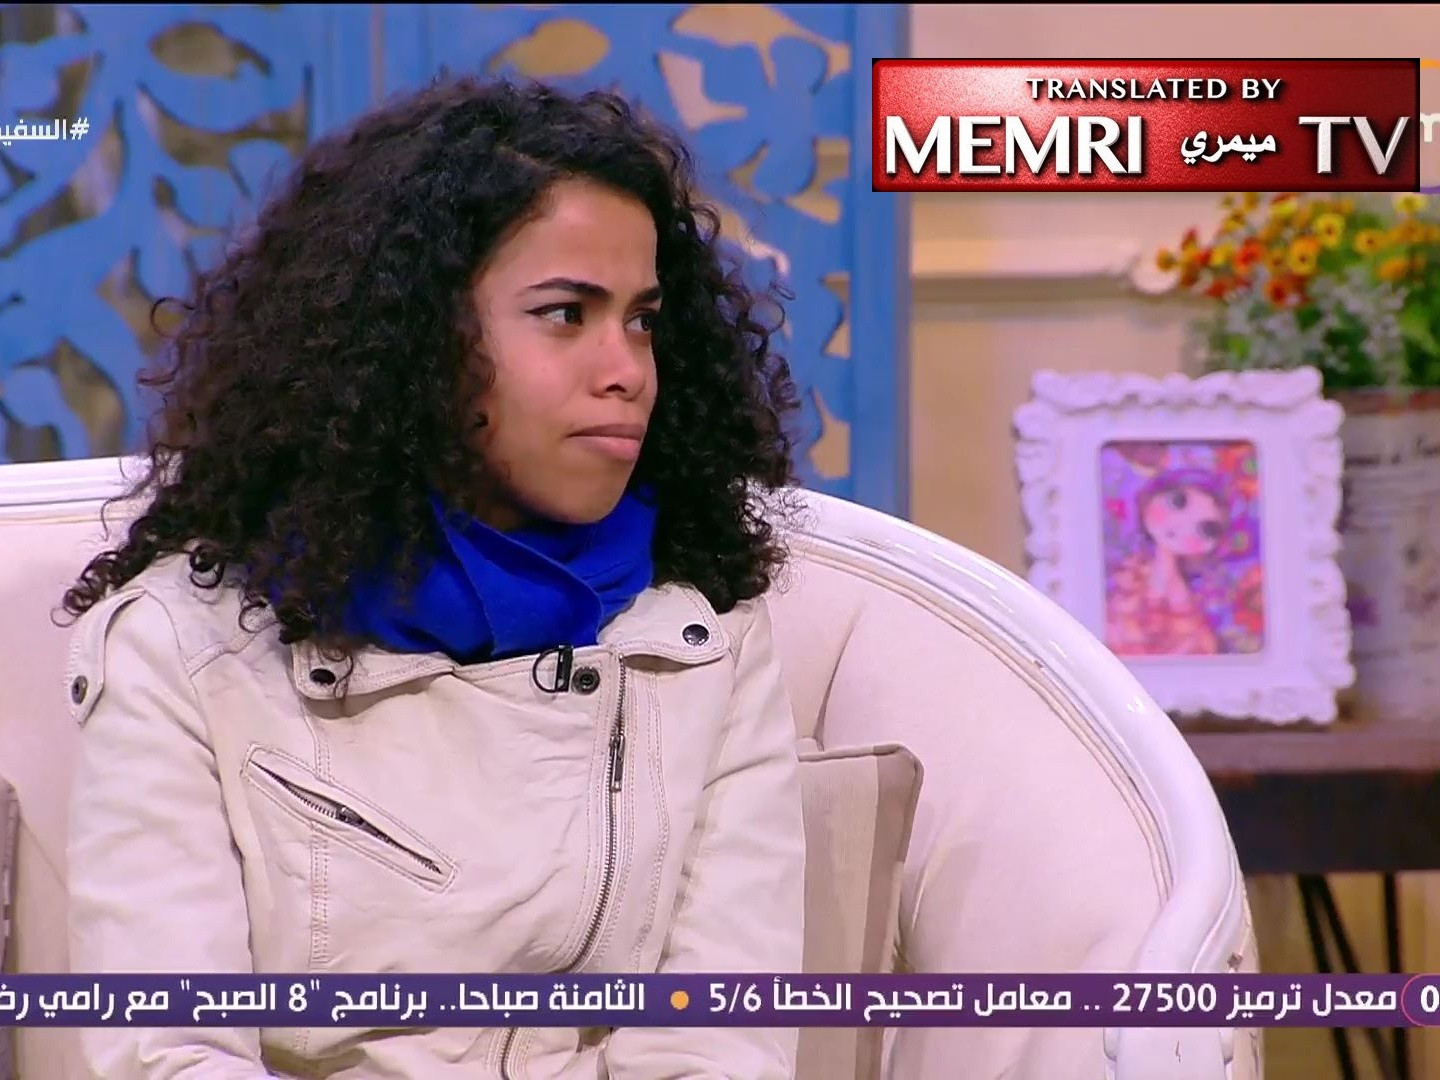 Egyptian Theater Student Explains Refusal to Undergo FGM Despite Pressure: Your Body Is Your Own